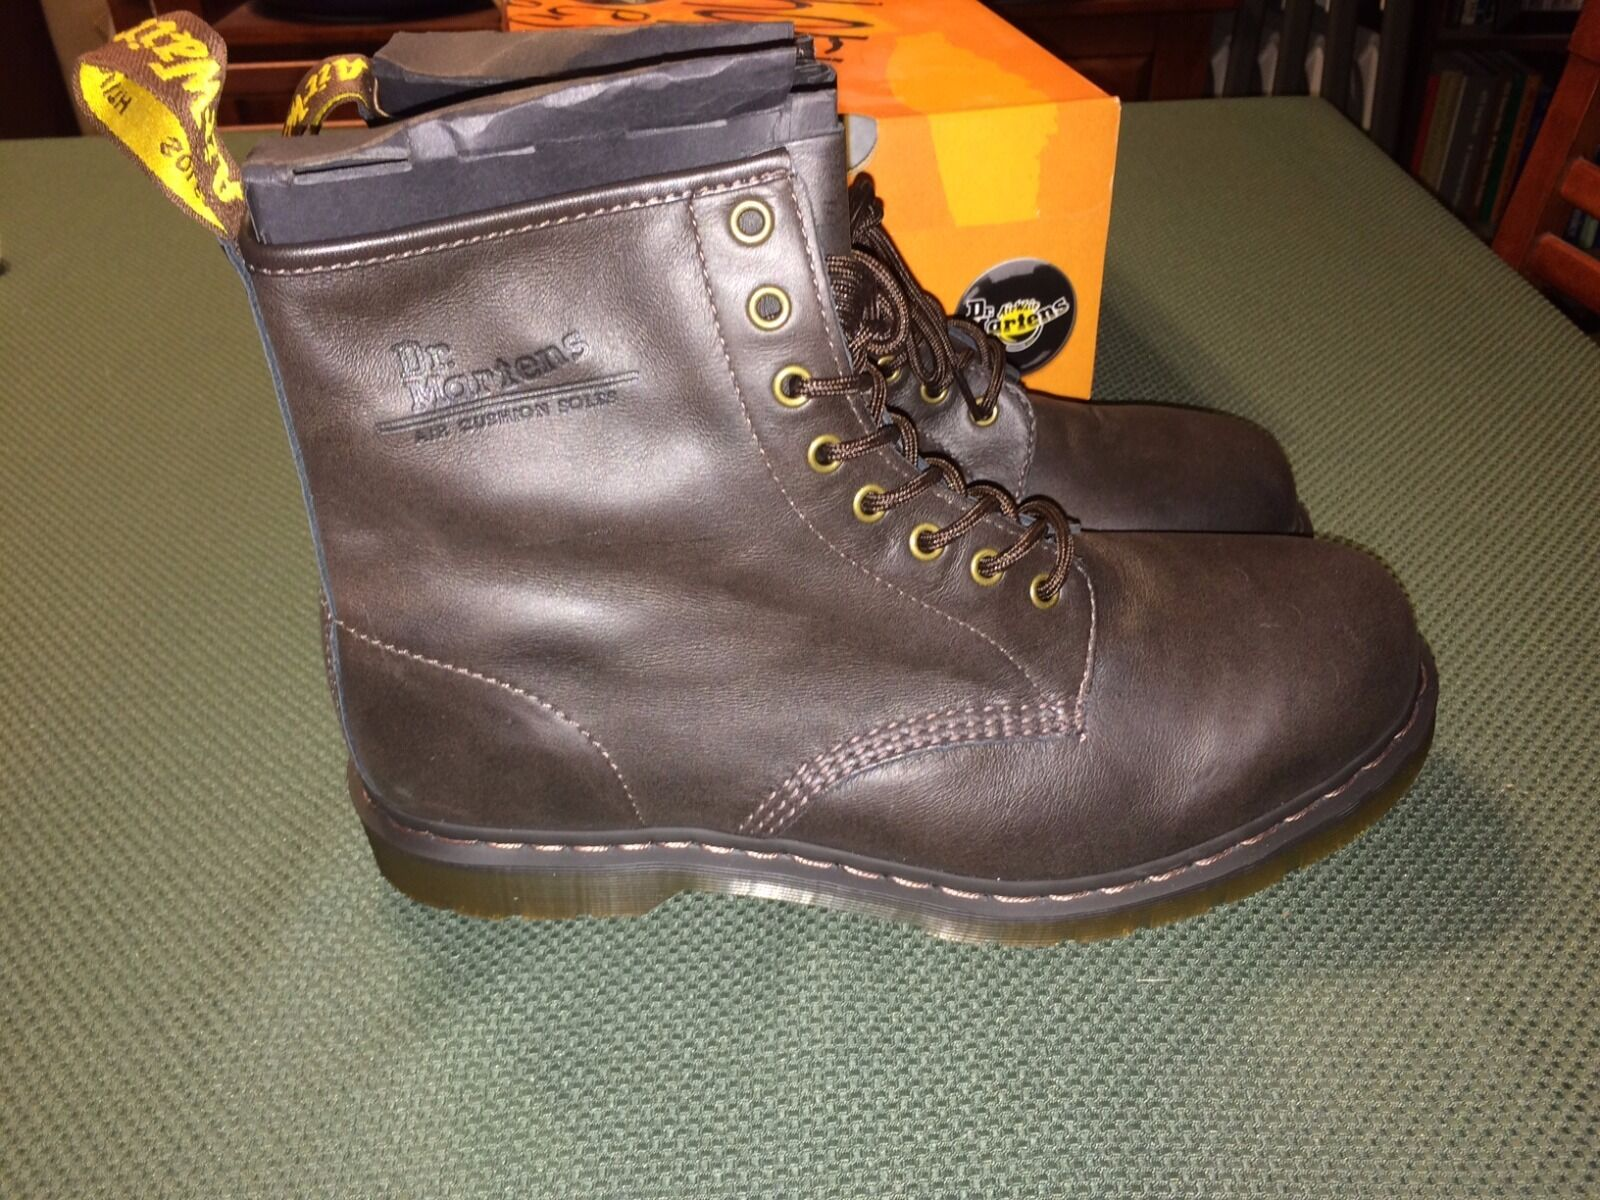 Doc Martens Dark Brown Boots Size Men 12 US 8 Eye Reg Toe New Made in China